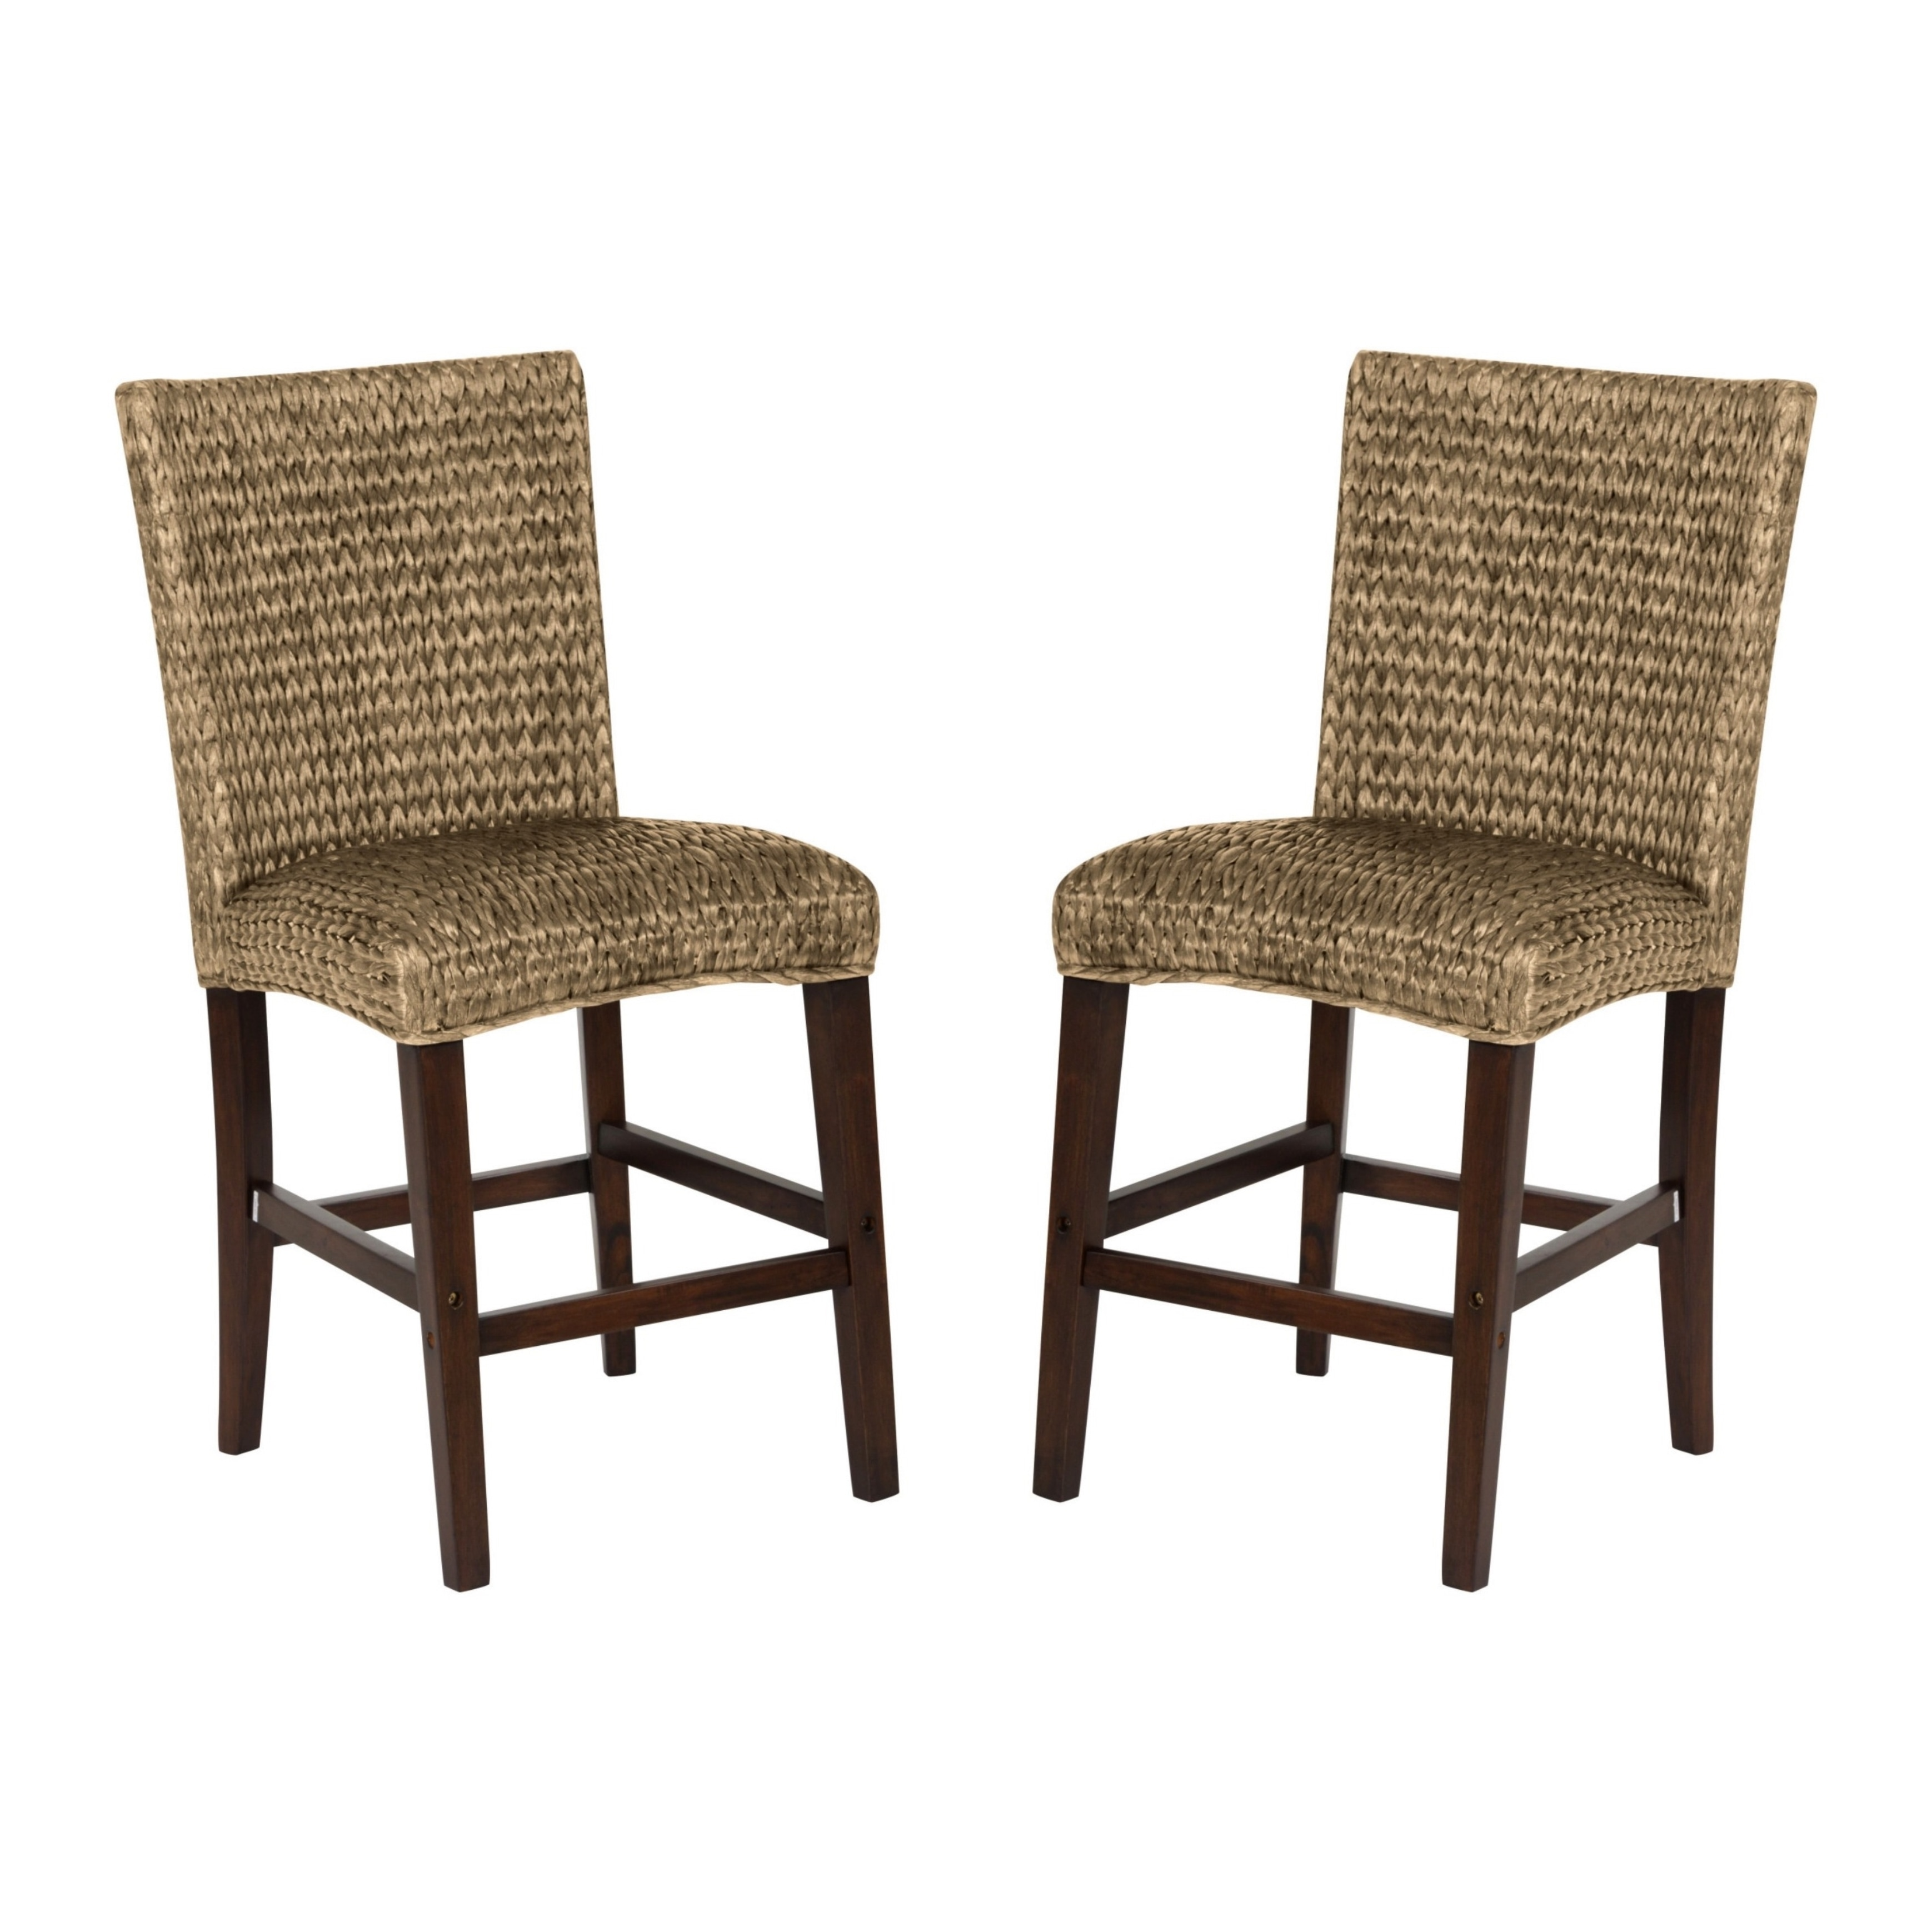 Uncategorized Woven Stools montgomery rattan woven counter height stools set of 2 ebay of